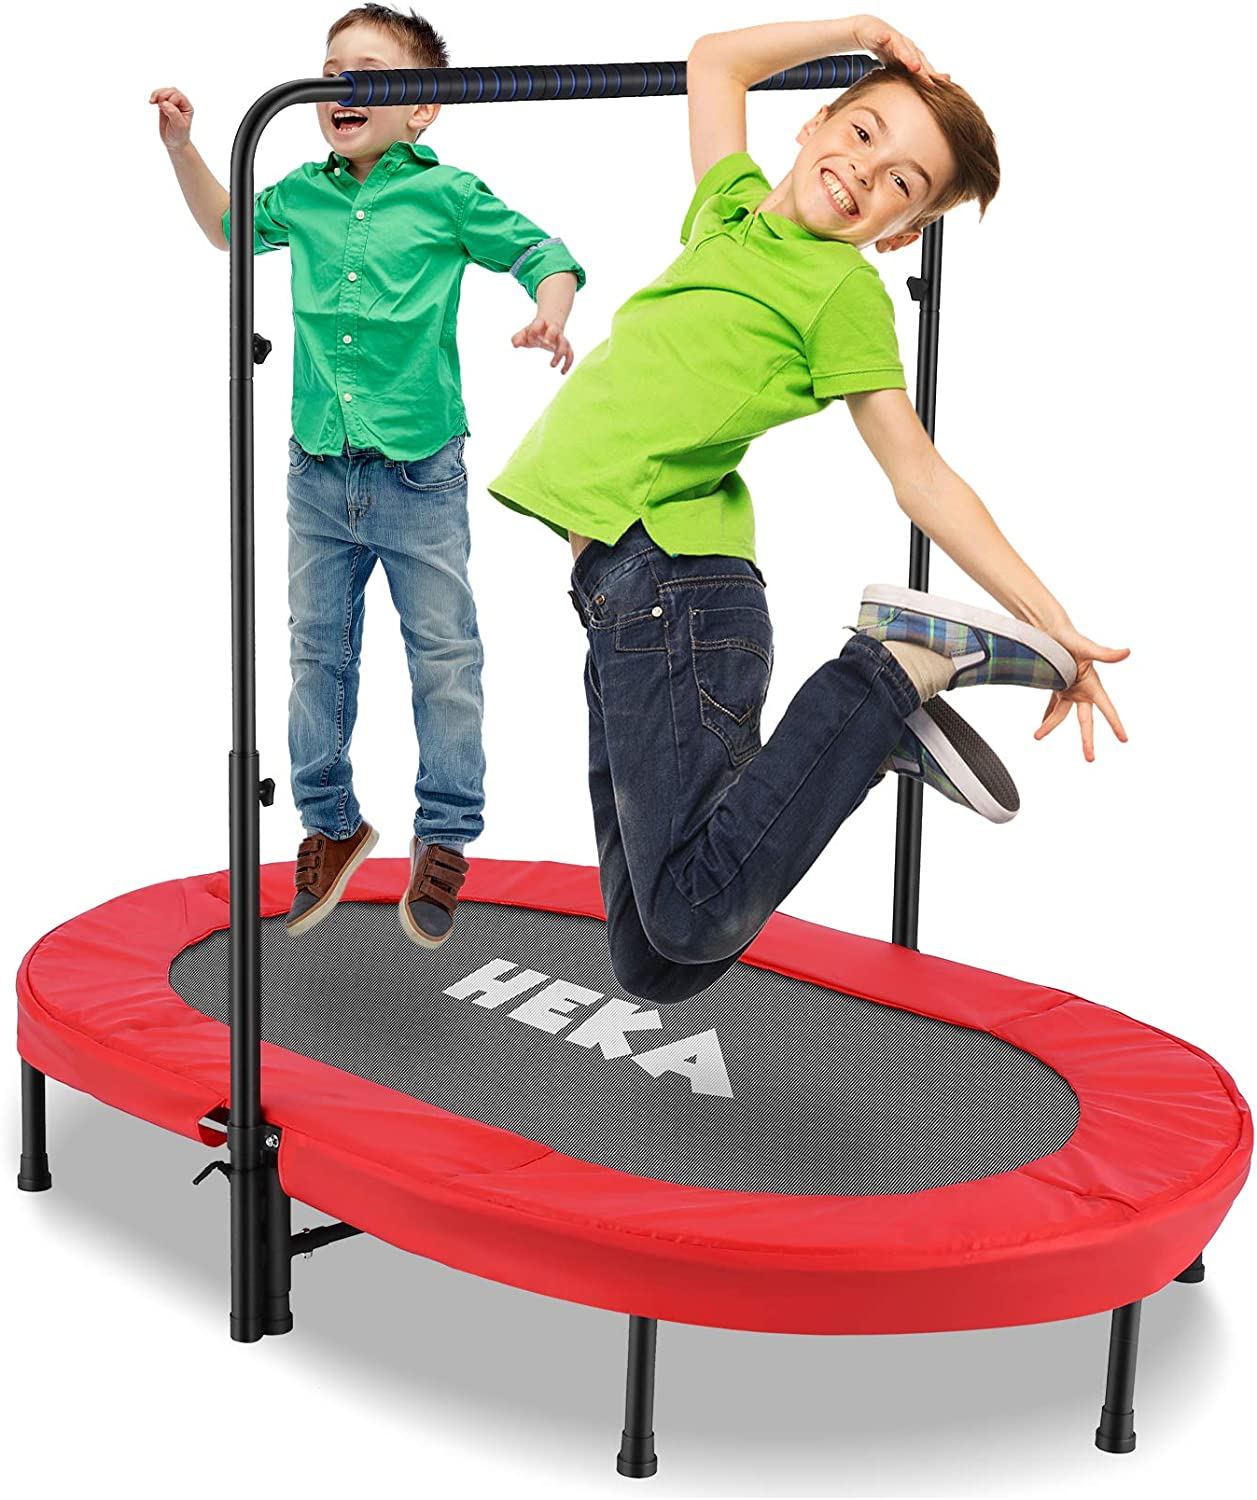 Trampoline for 2 Kids and Adults with Adjustable Handle, Foldabl